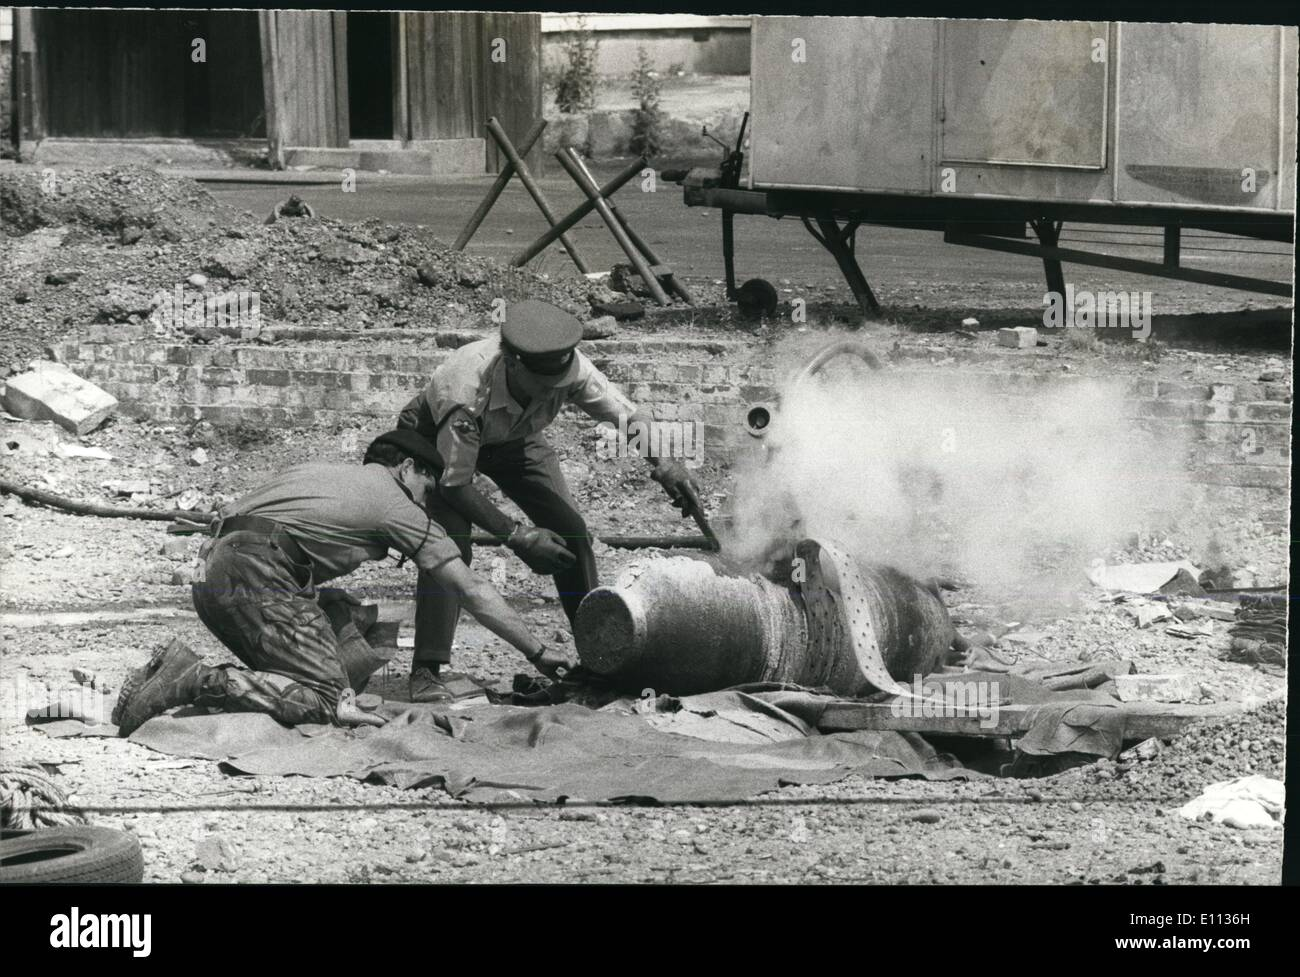 Jul. 07, 1975 - Wartime bomb discovered in Bexleyheath - Kent: Many homes were evacuated in Bexleyheath today as Army bomb disposal experts worked to defuse a 1100 lb. war time bomb discovered in a council yard. Photo Shows Bomb disposal officers work on the bomb whilst they inject into it stream to force the explosive out. - Stock Image